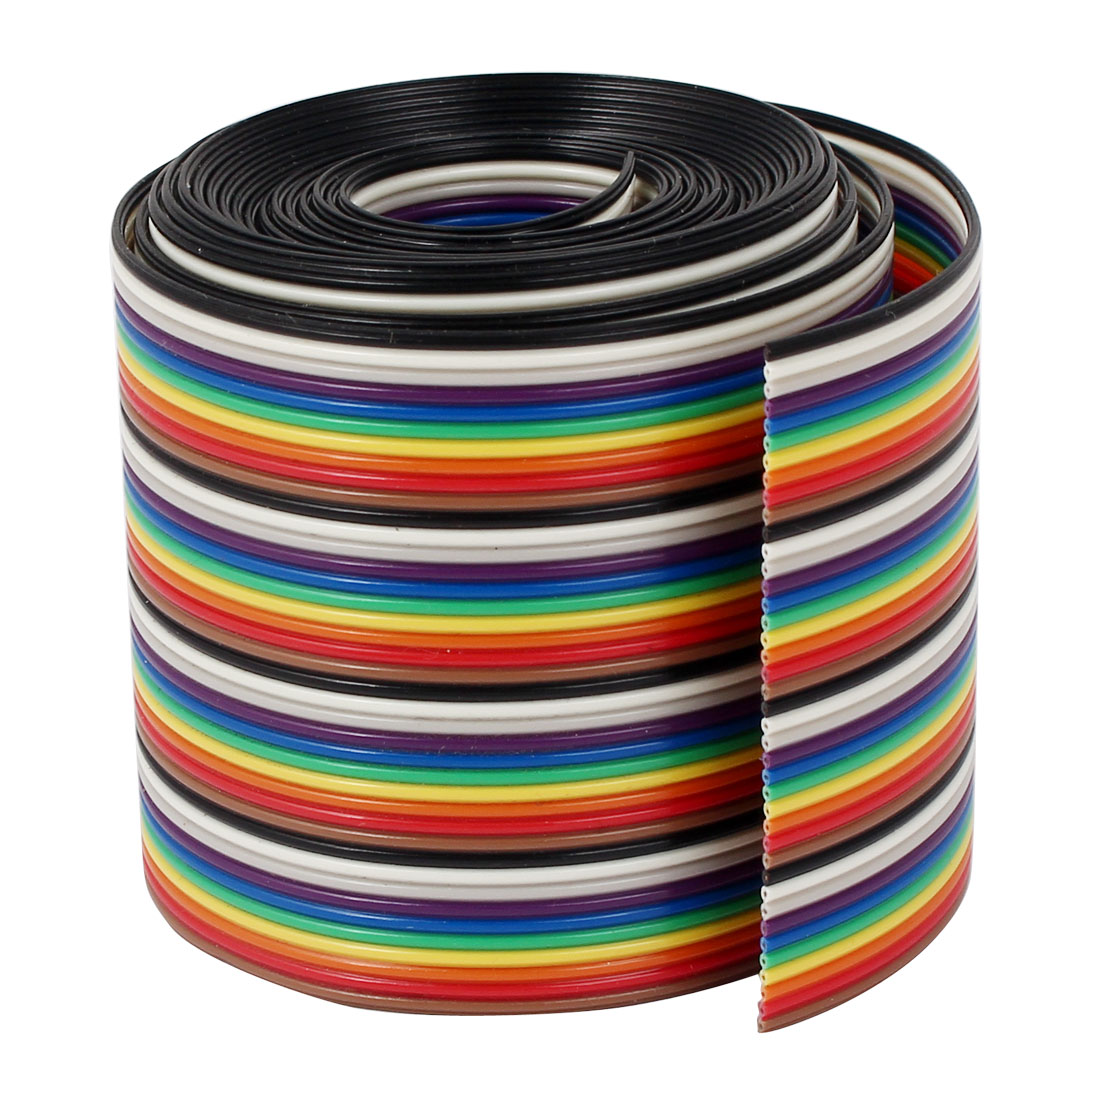 2 Meter 6.6ft 40 Way 40 pin Flat Rainbow Ribbon IDC Cable Wire Rainbow Cable jet triple 2 flat pin sockets power strip yellow 2 flat pin plug ac 110 220v 48cm cable page 2 page 1 href